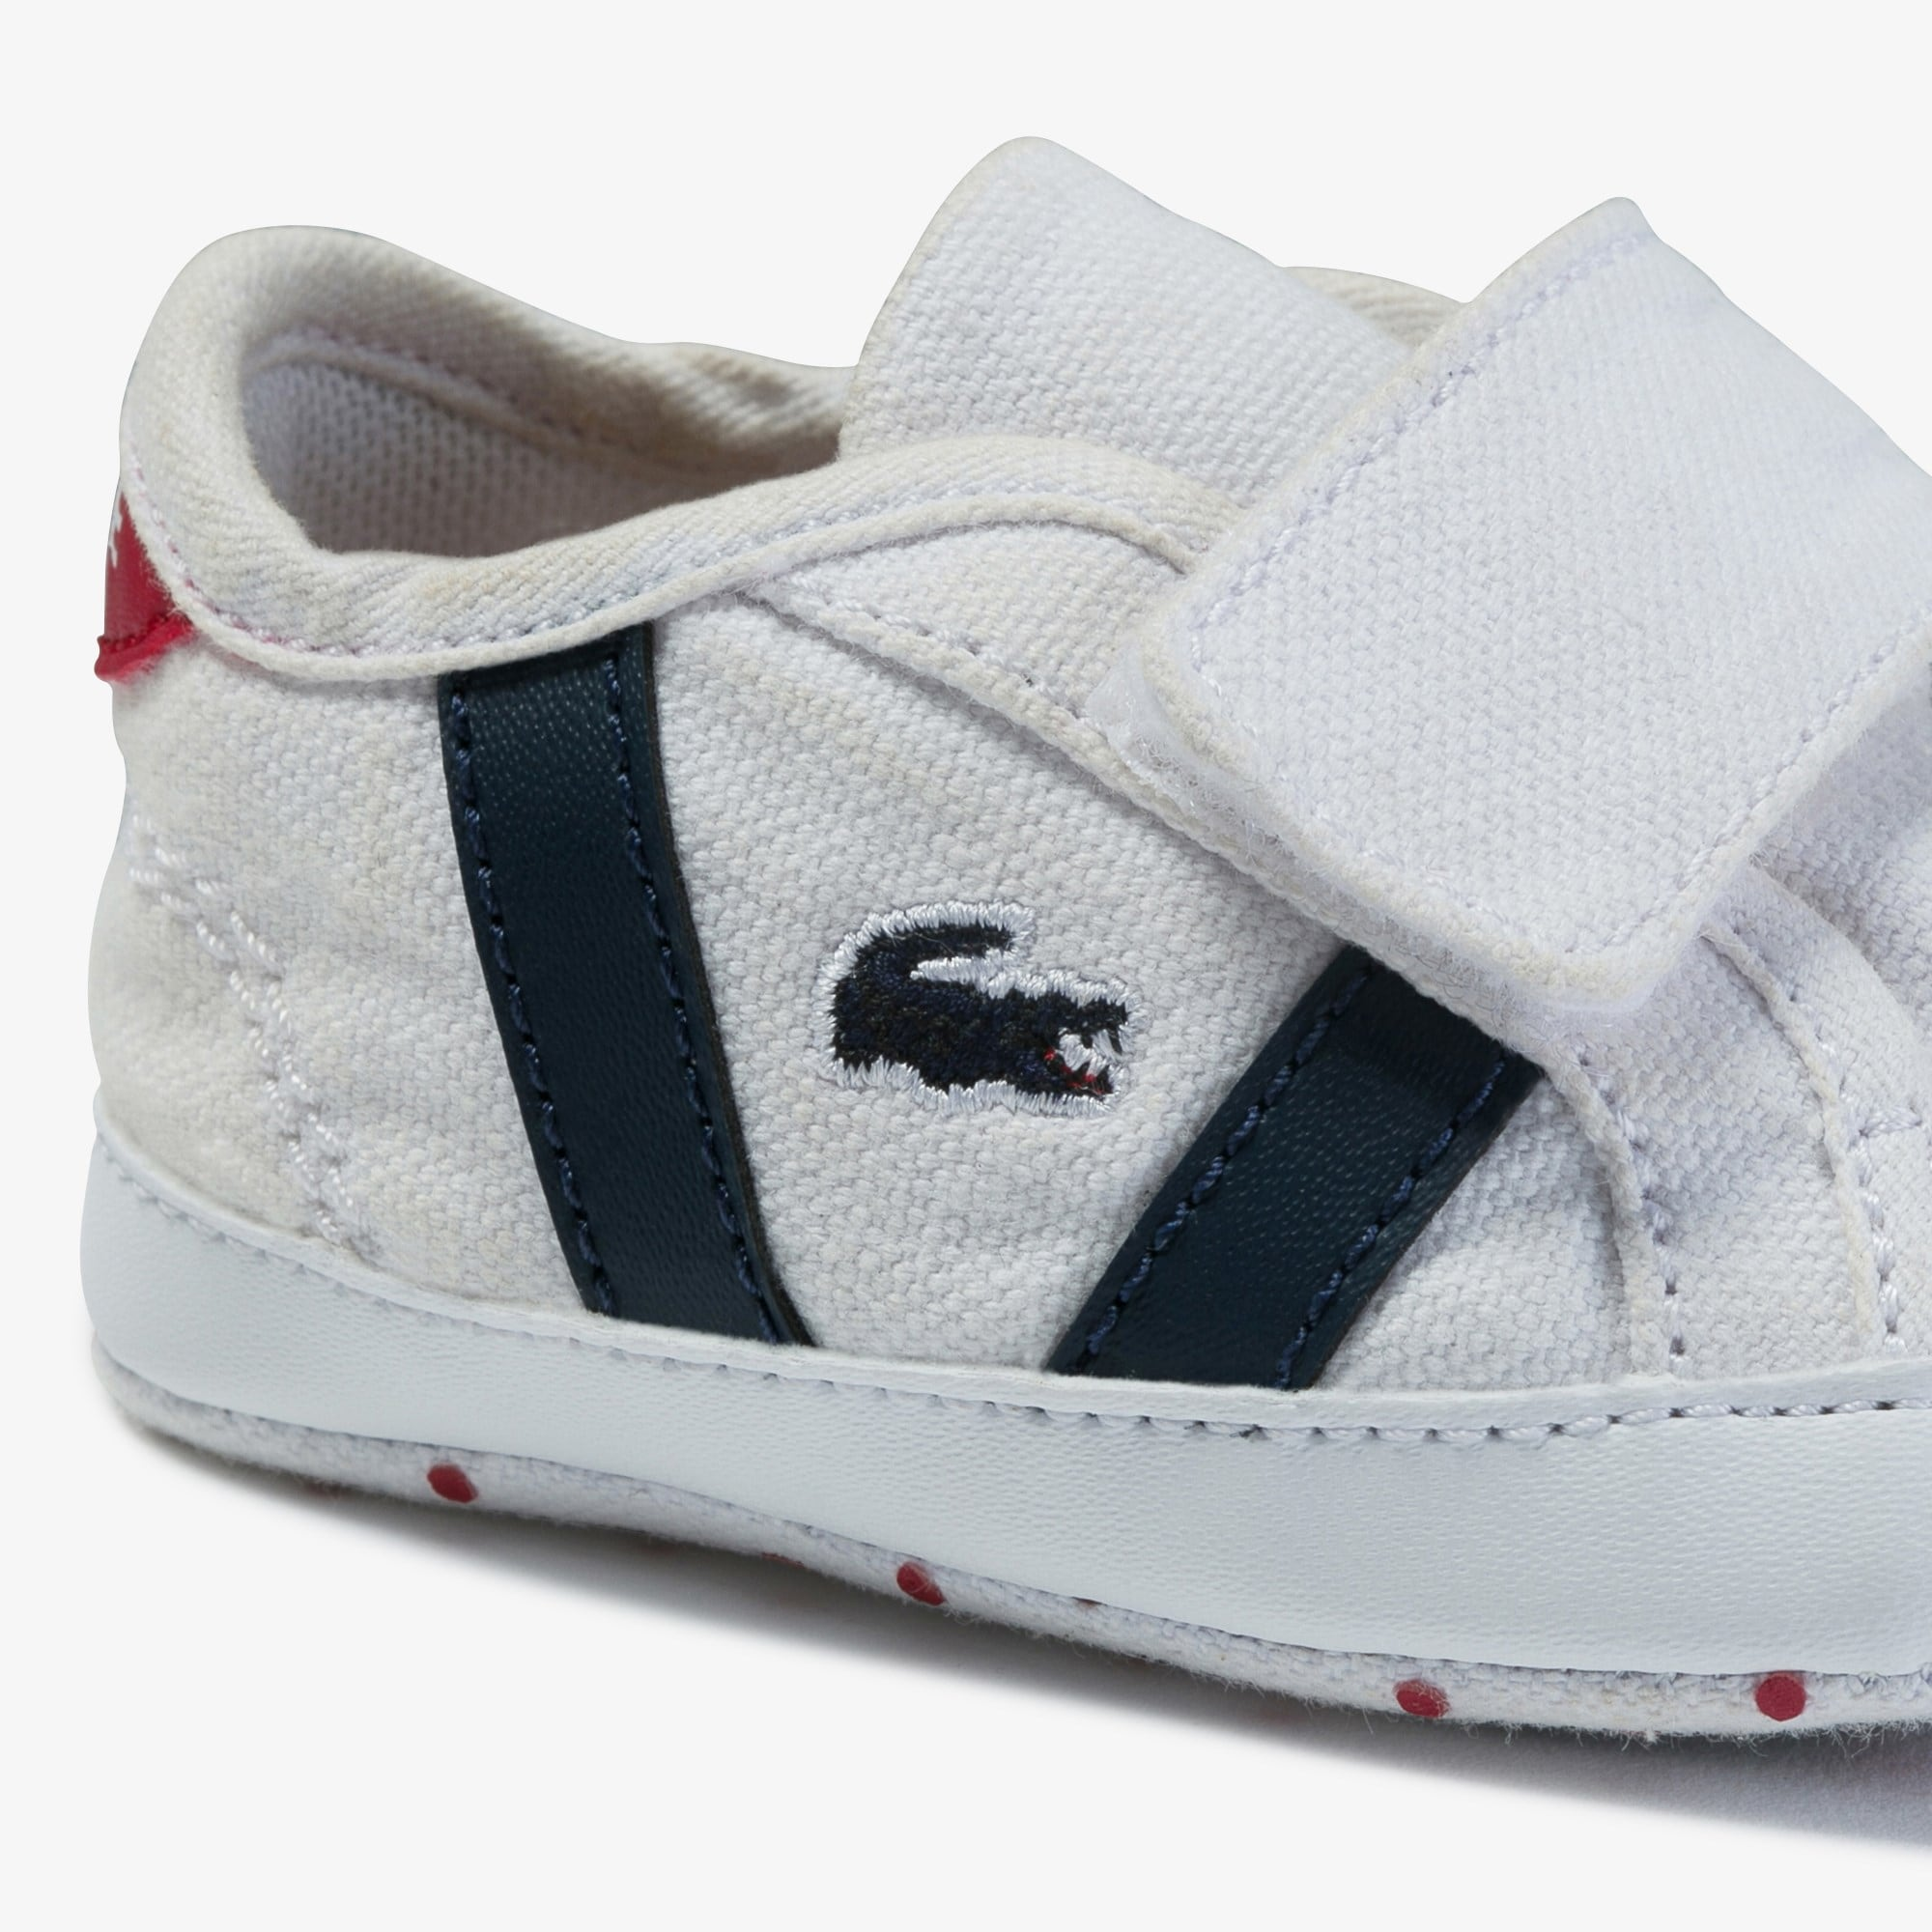 Babies' Sideline Crib Canvas and Synthetic Sneakers